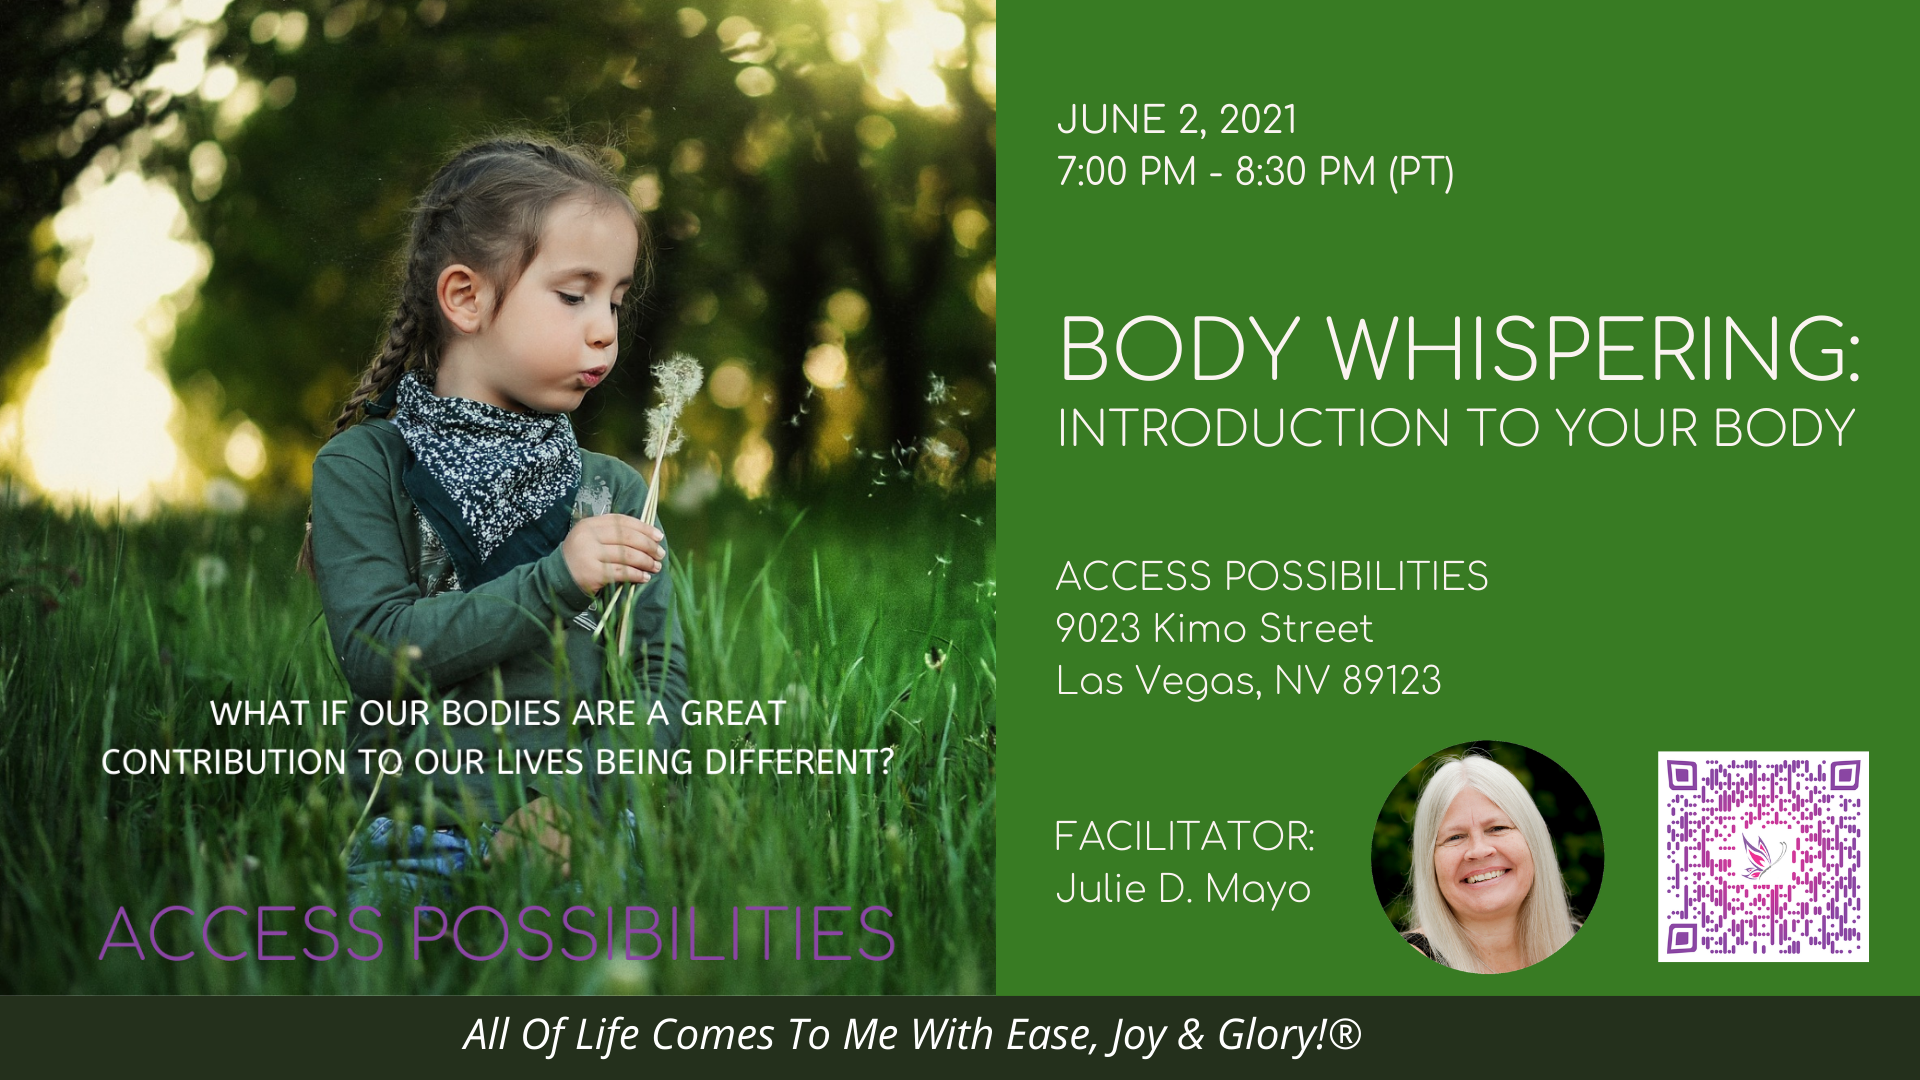 Introduction To Your Body Live Class Details | June 2, 2021 | Access Possibilities